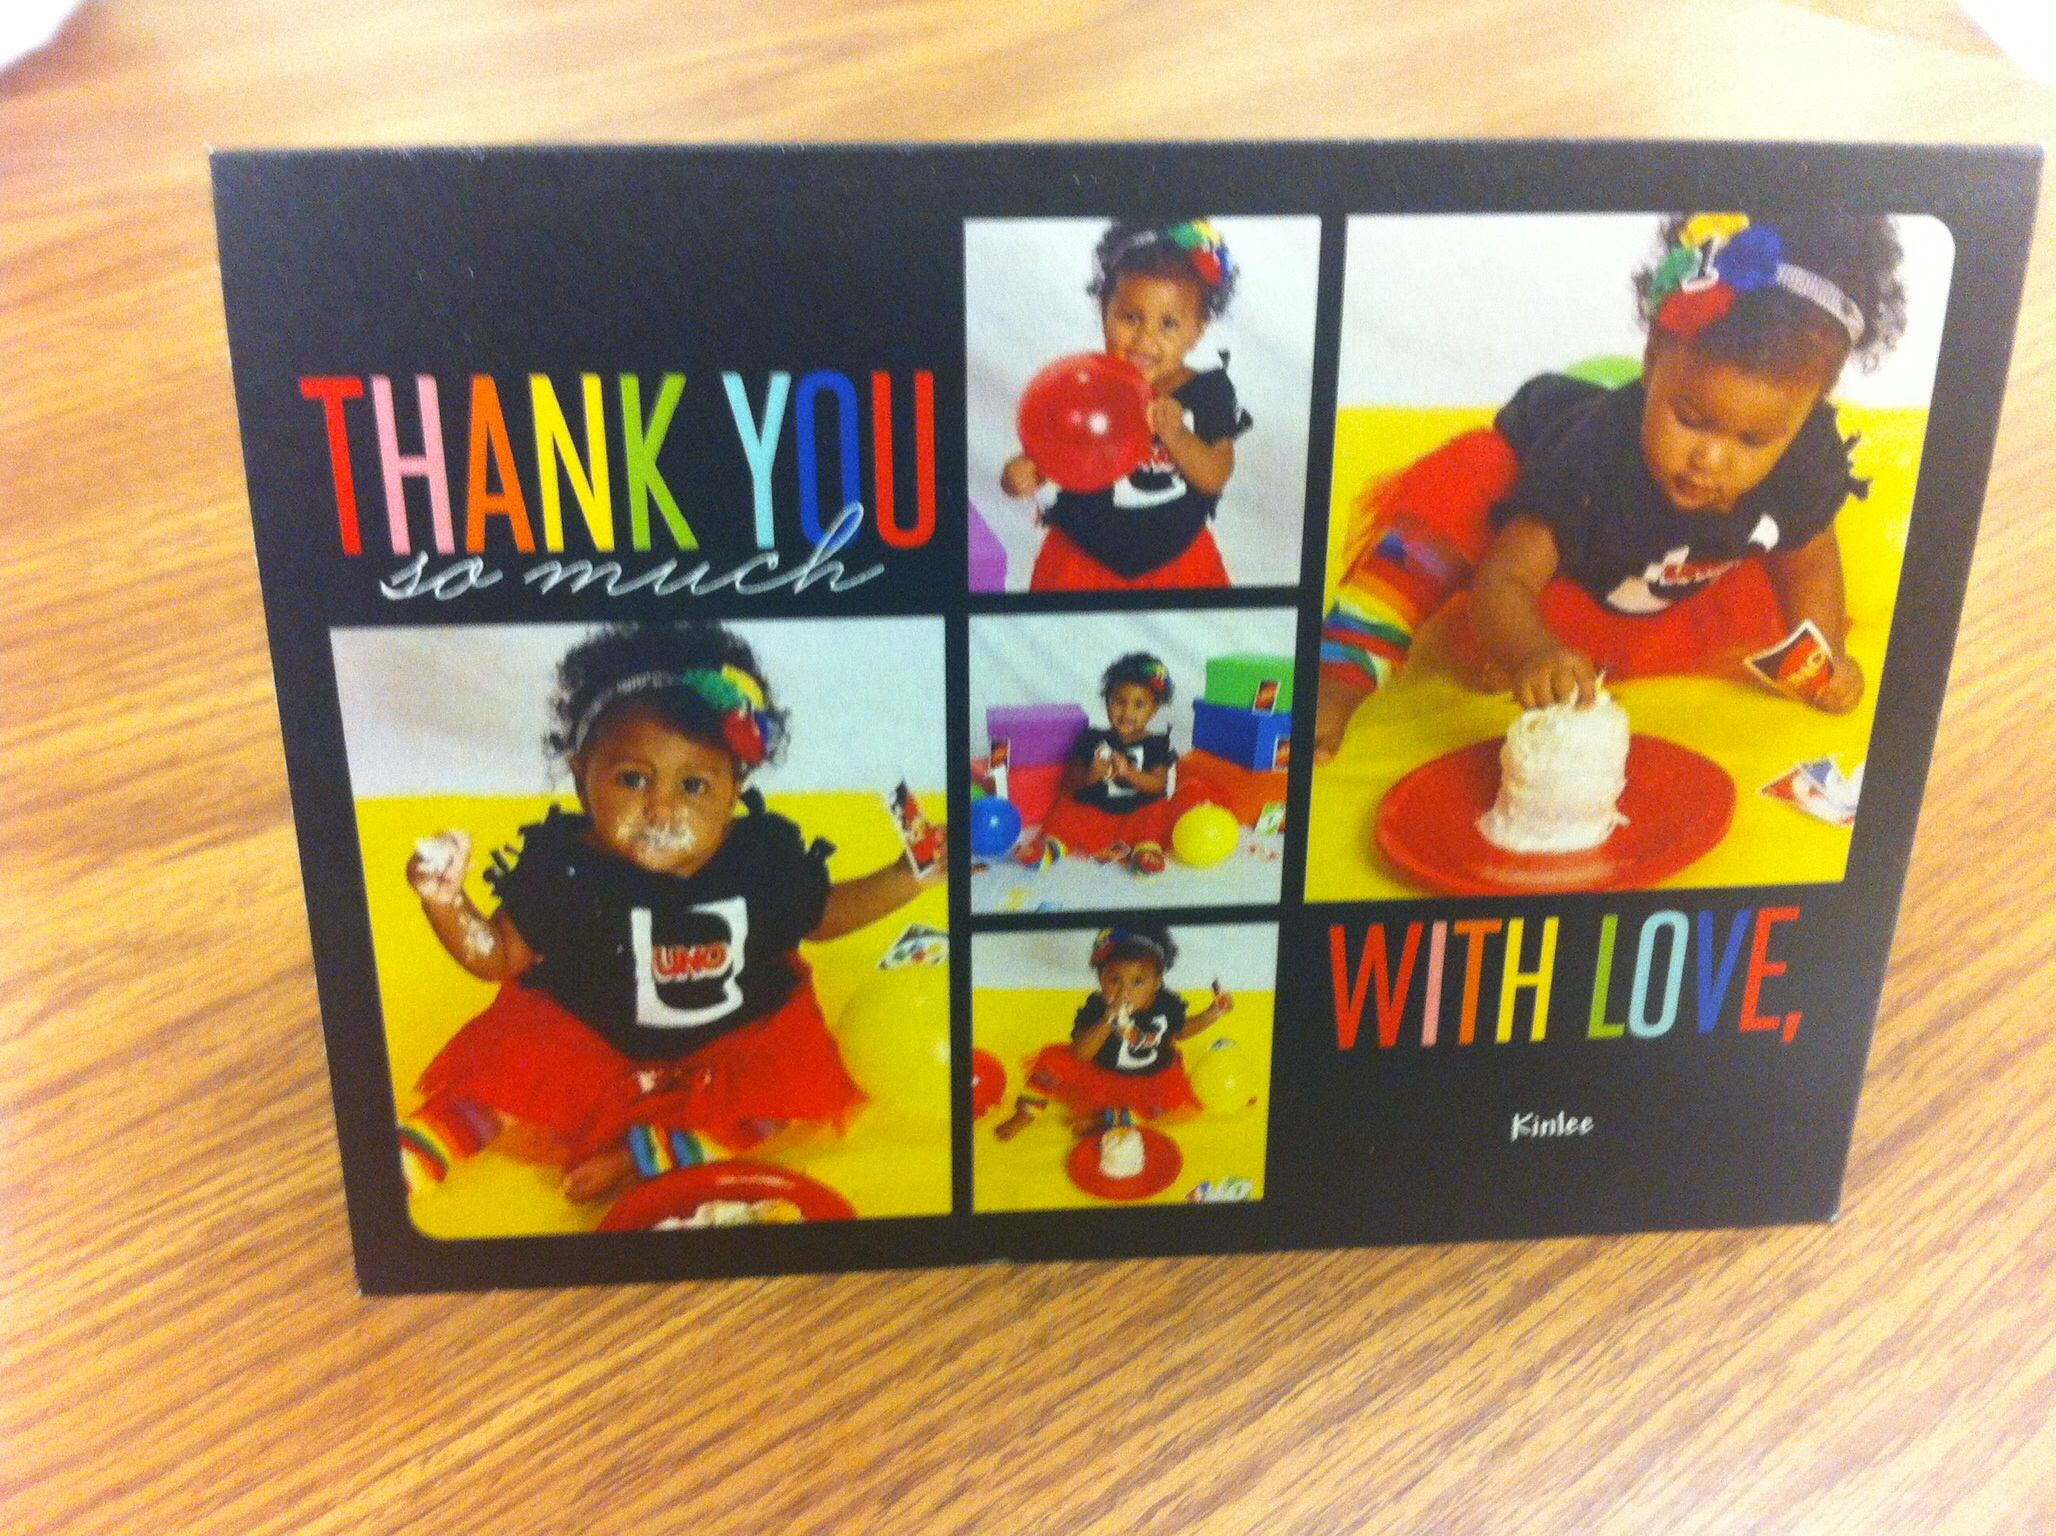 Kinlee S Uno Birthday Party Thank You Cards Made On Shutterfly